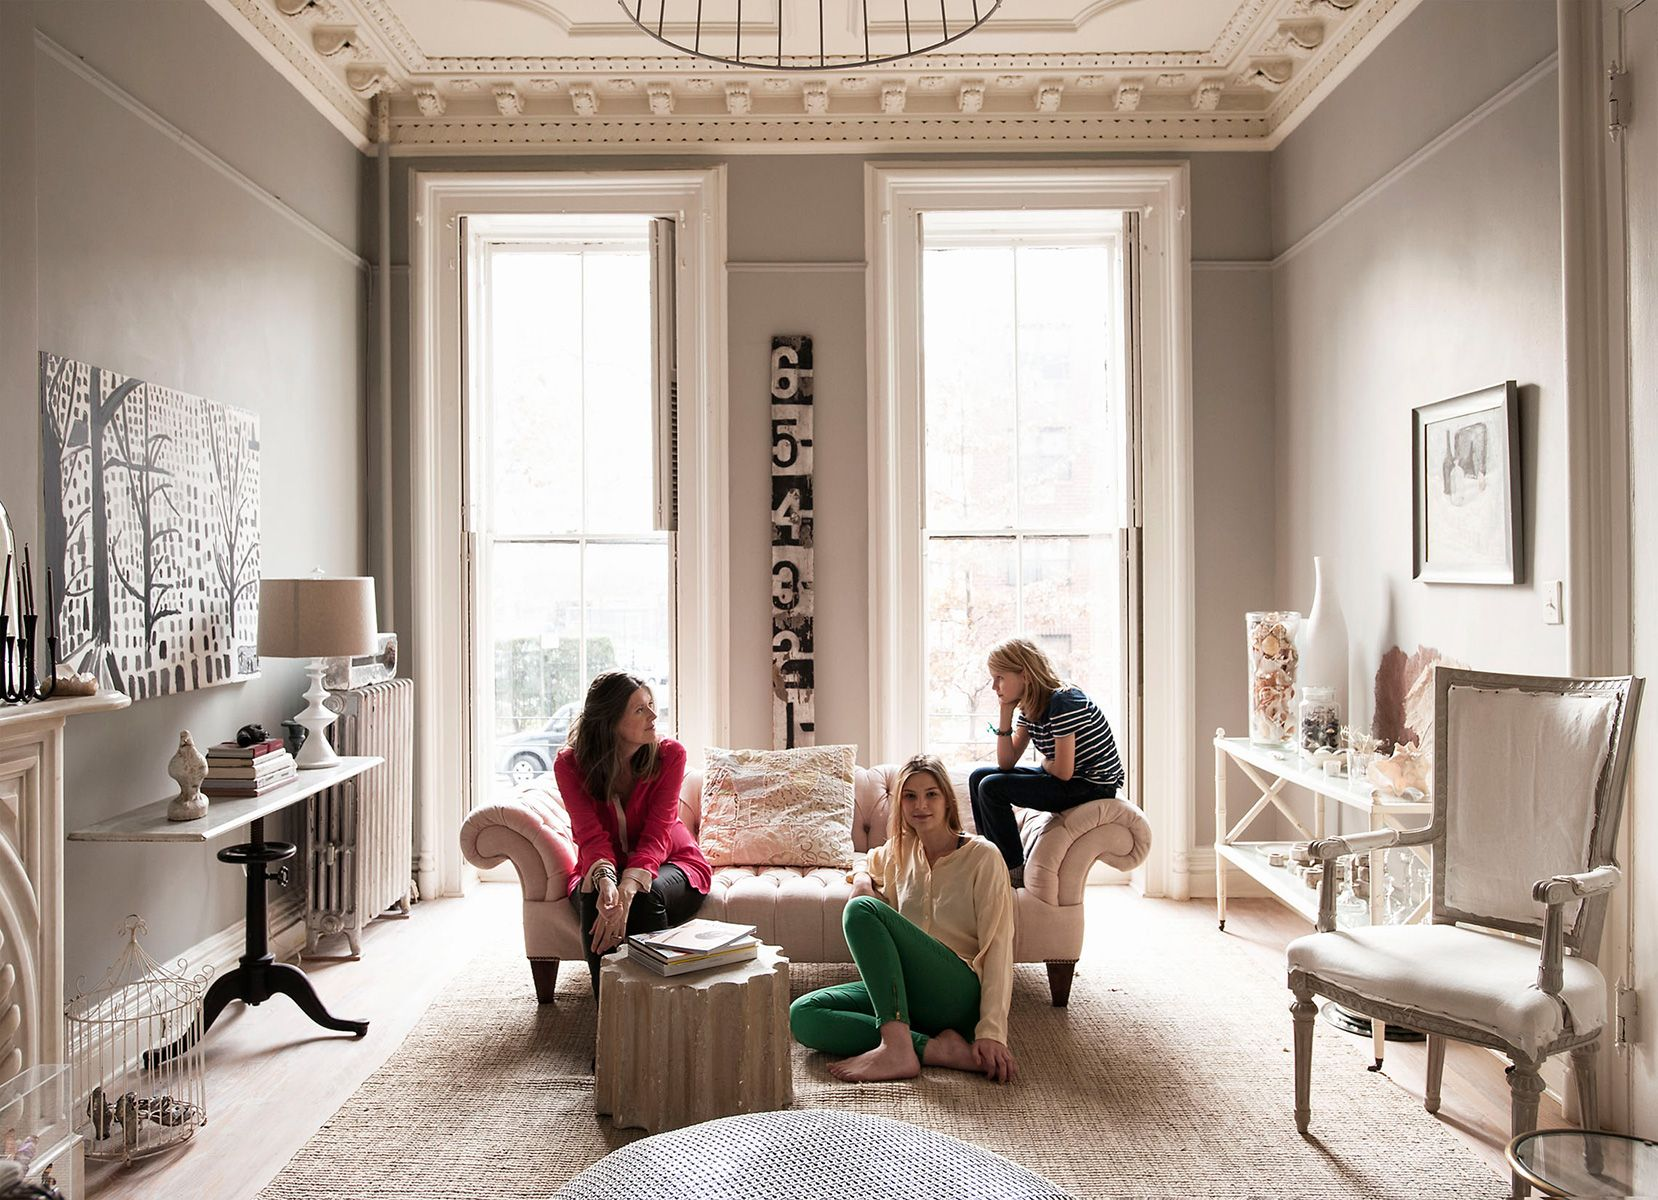 brooklyn interior design hilary robertson s elegant vintage home in rh pinterest com interior designer brooklyn ny interior design brooklyn college